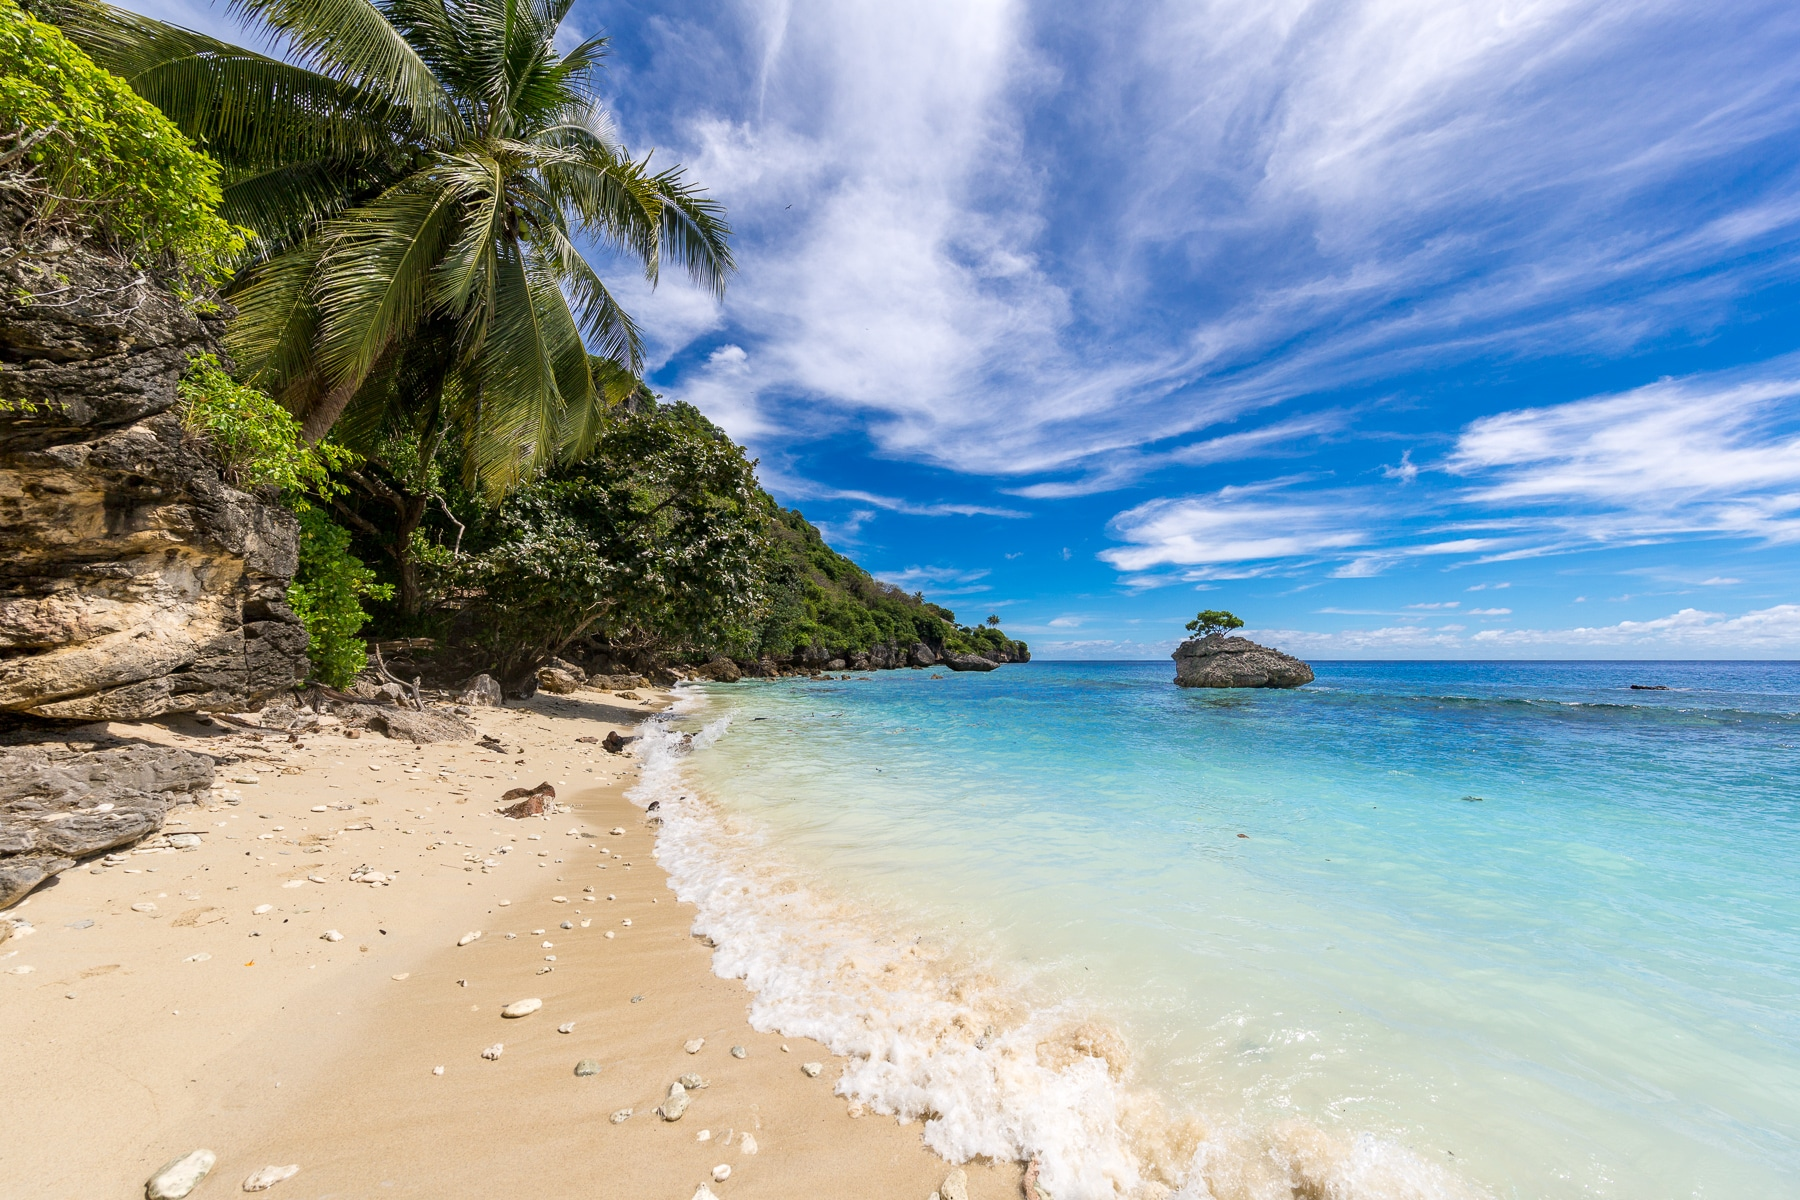 Christmas & Cocos (Keeling) Islands itinerary